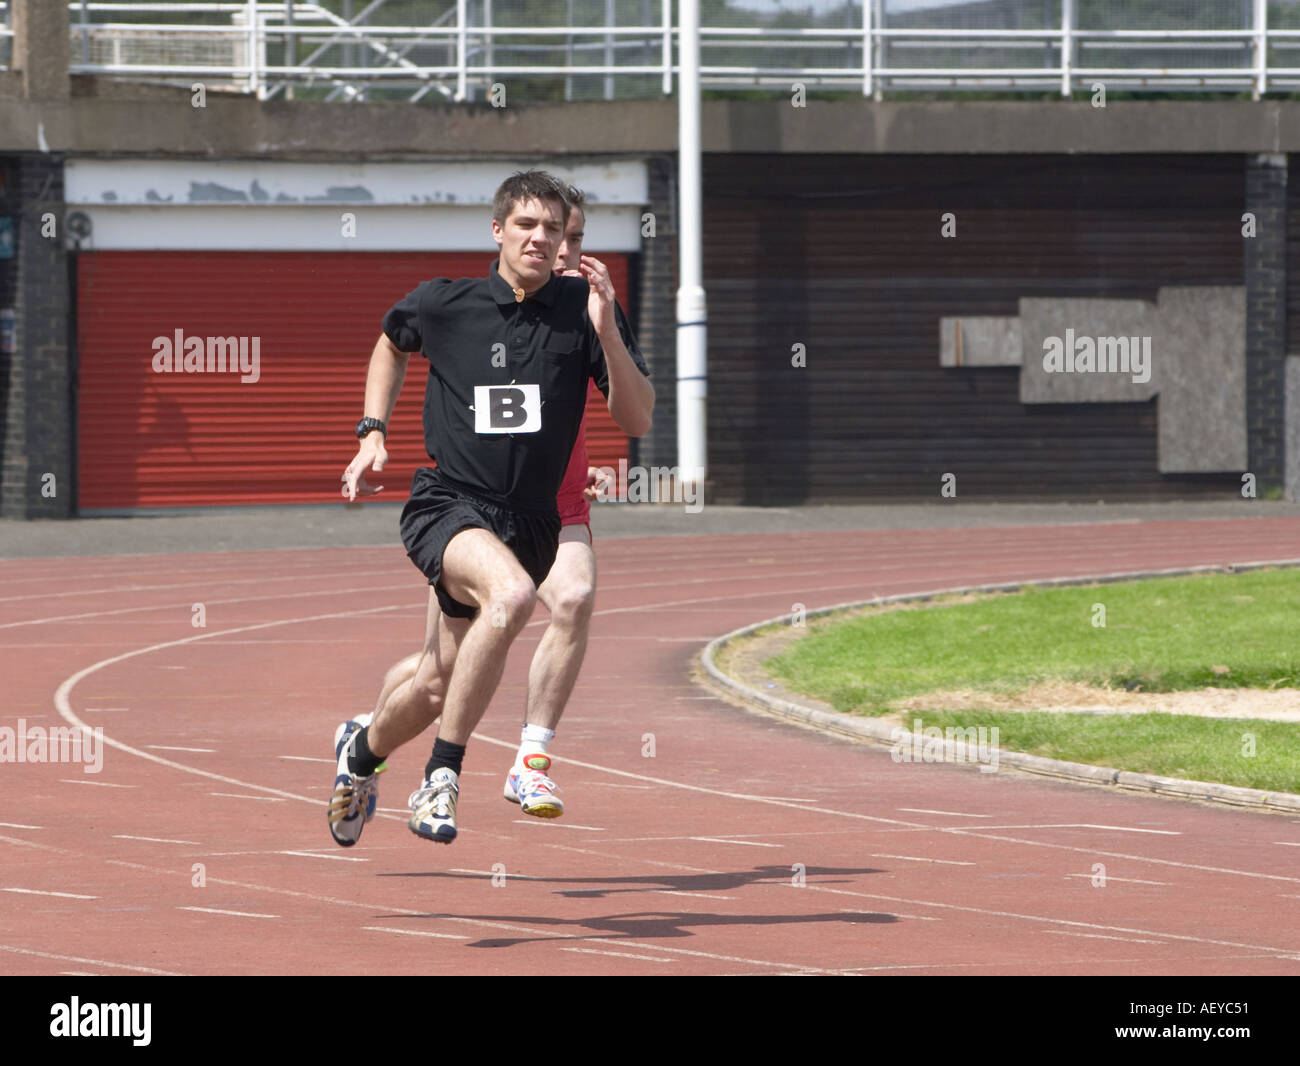 runner at an athletics competition - Stock Image